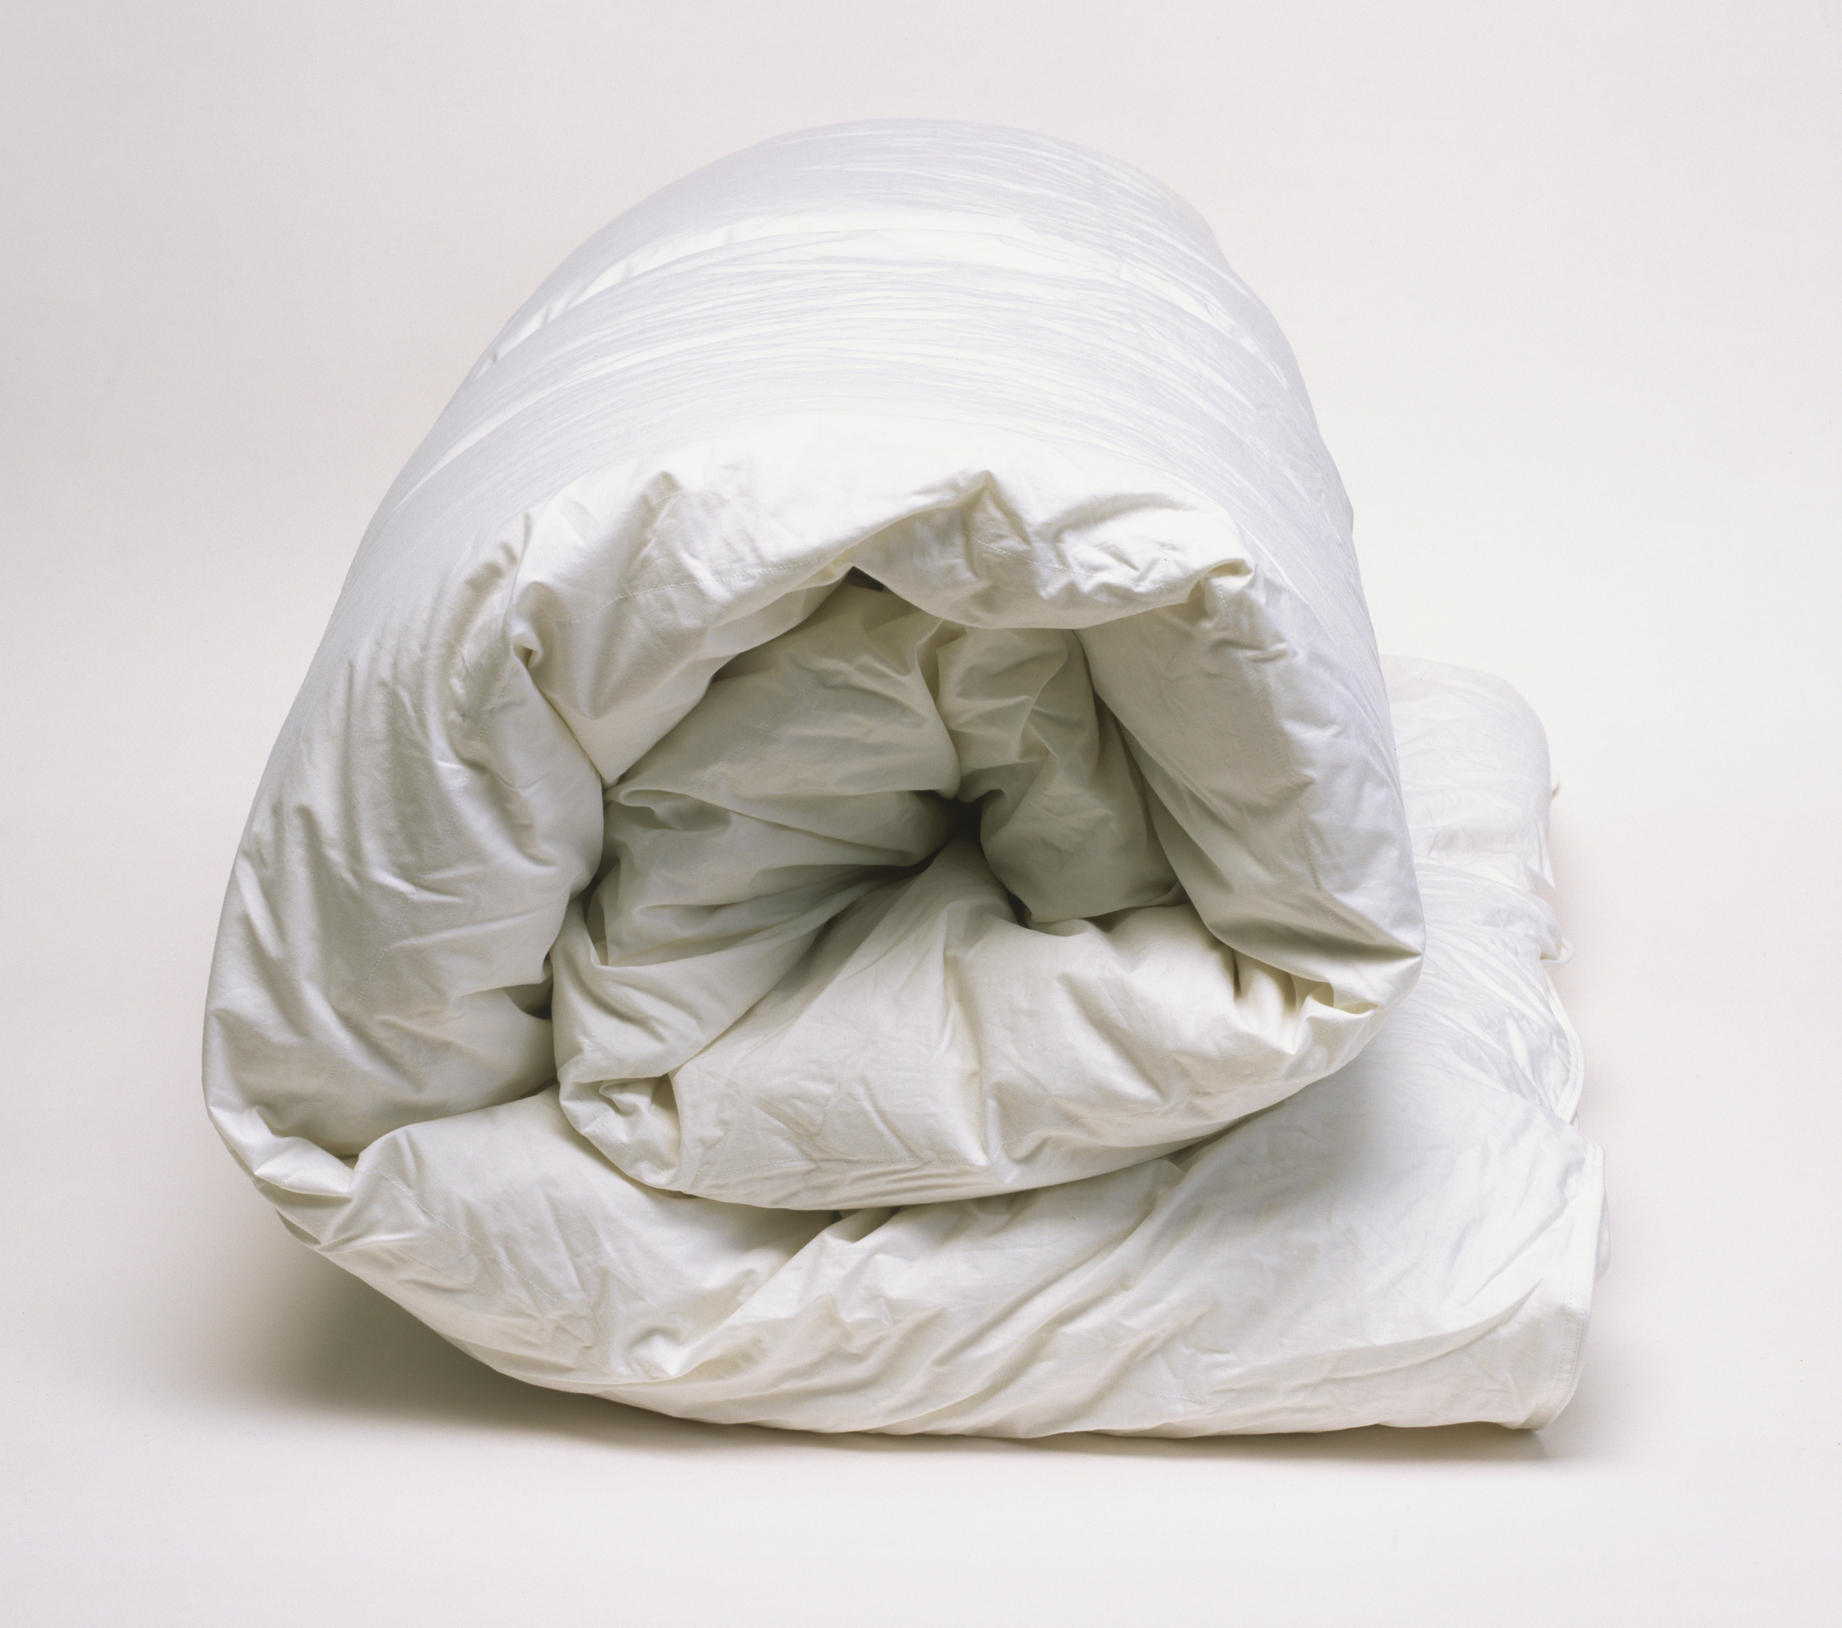 White goose-down duvet, rolled up, side view.